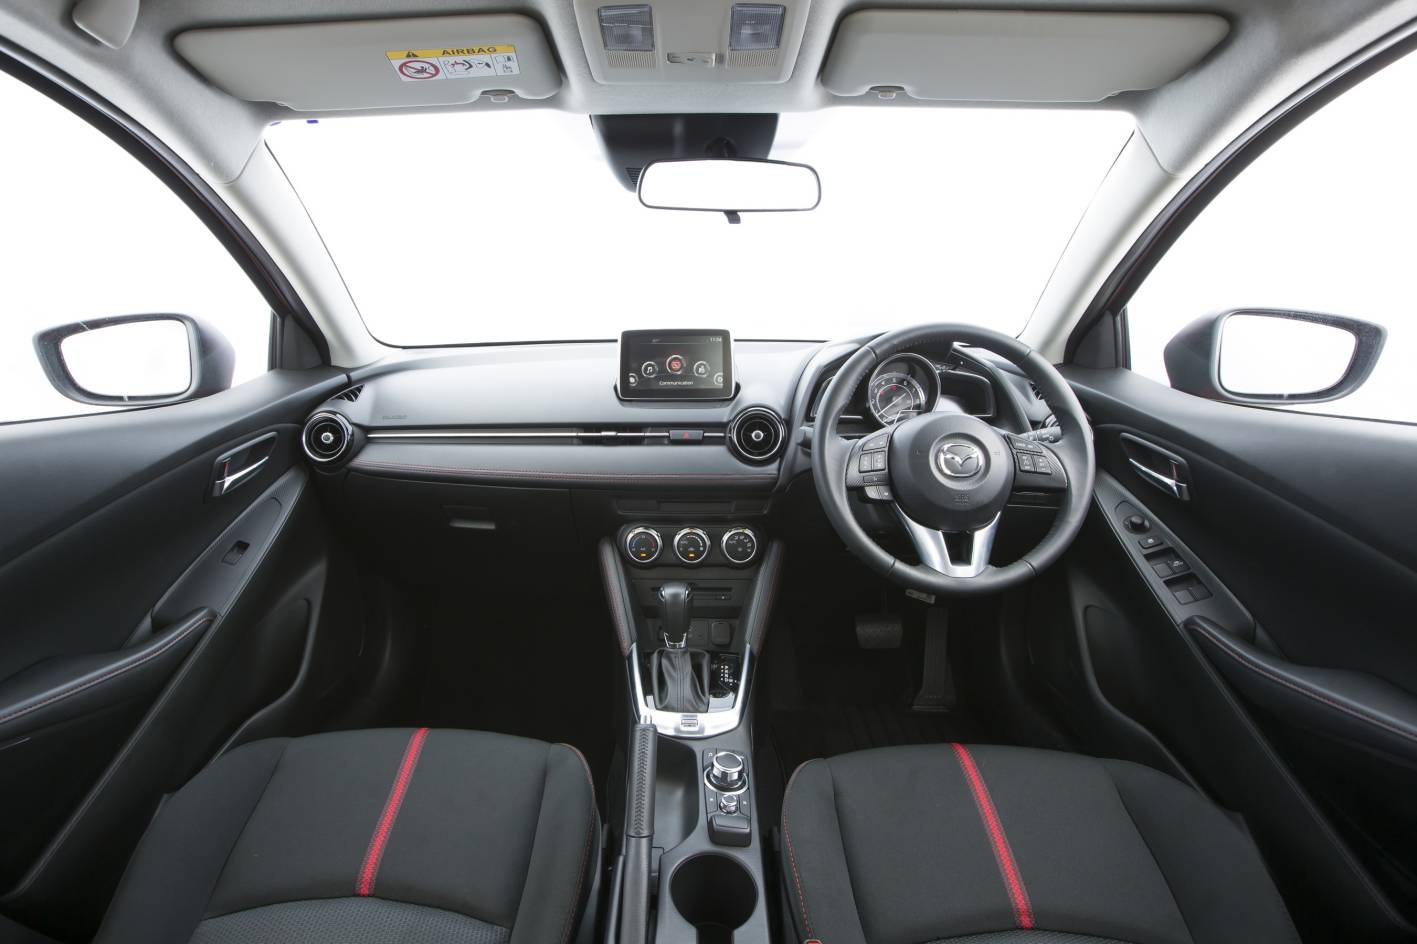 Mazda Cars - News: 2014 Mazda2 on sale now from $14,990